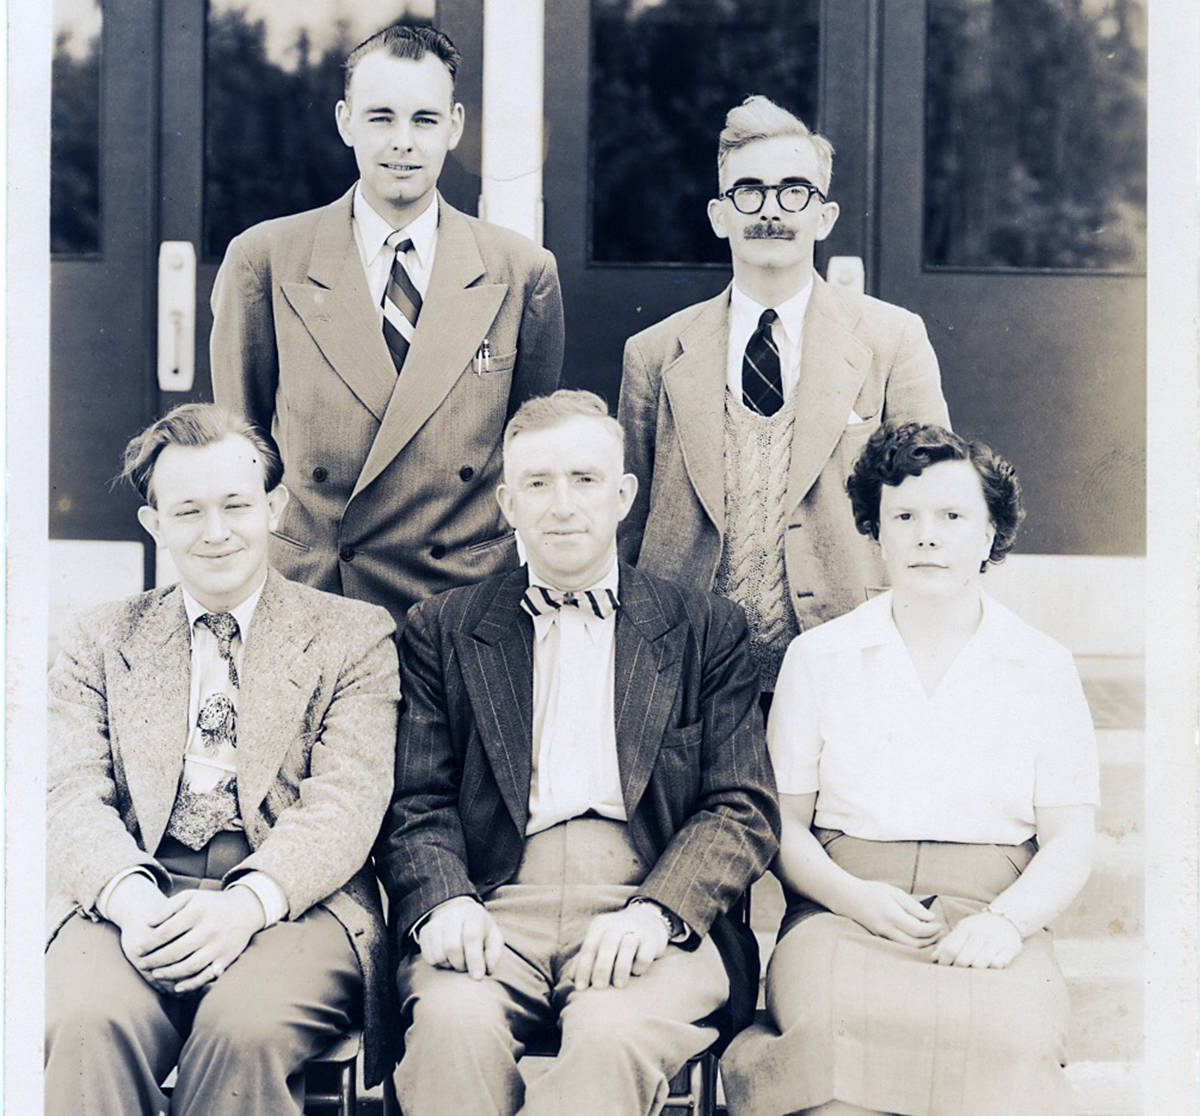 Dave Alexander, back row, left, was part of the founding staff of Chemainus Jr. High School in 1951-52. Beside him is Cedric Lonsdale. Front row, from left: Alan Child, Vice Principal John Rukin and Principal Nancy Thomas. (Photo submitted)